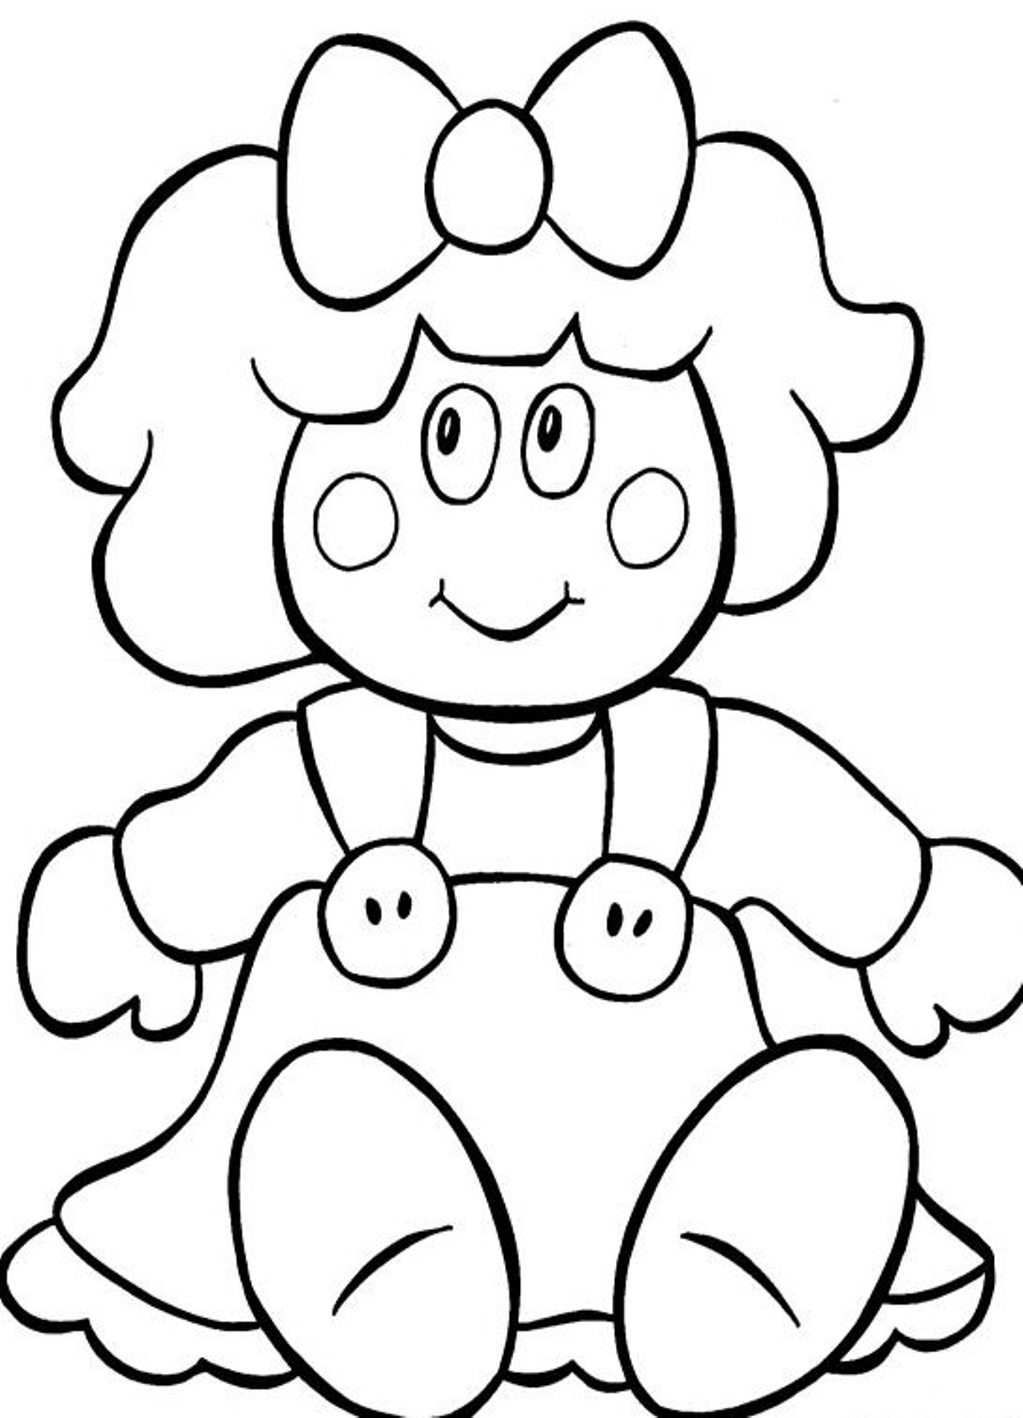 colouring pages to print free adult coloring pages animals best coloring pages for kids pages to free print colouring